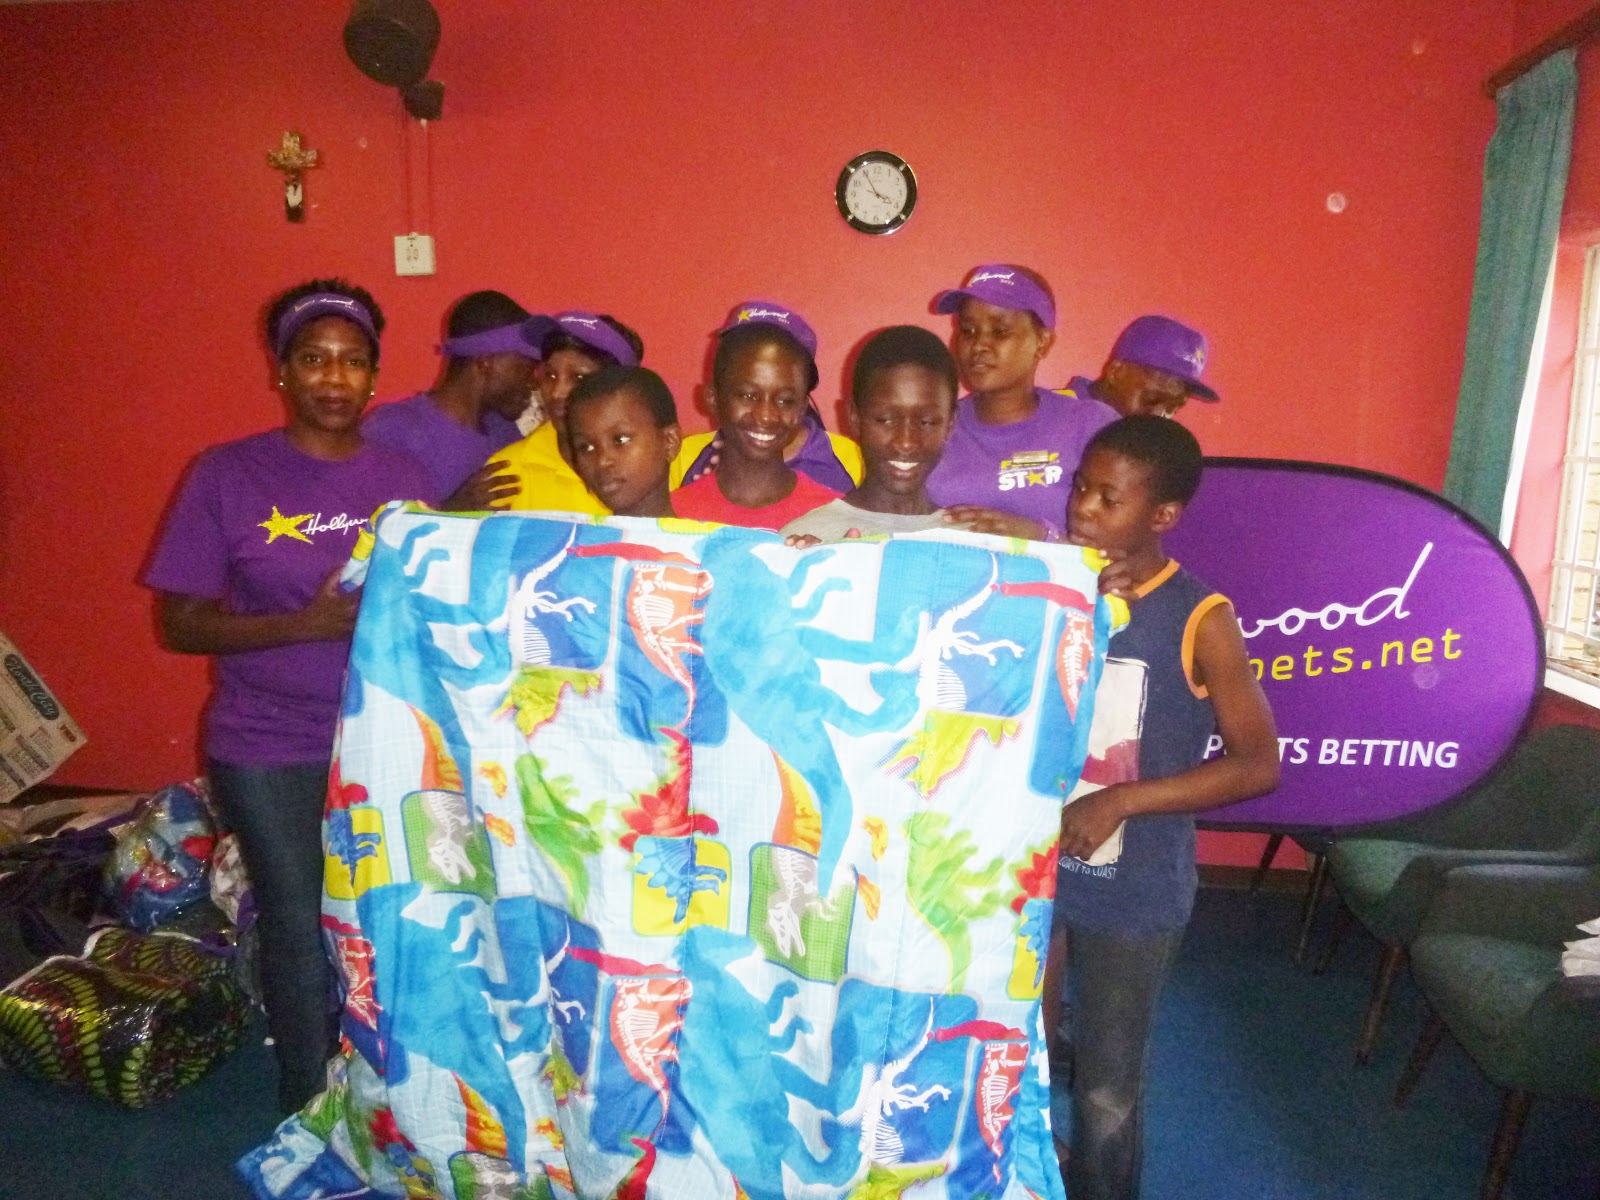 St Anthony's Child and Youth Care Centre staff members are thankful for a donation from Hollywoodbets Osizweni